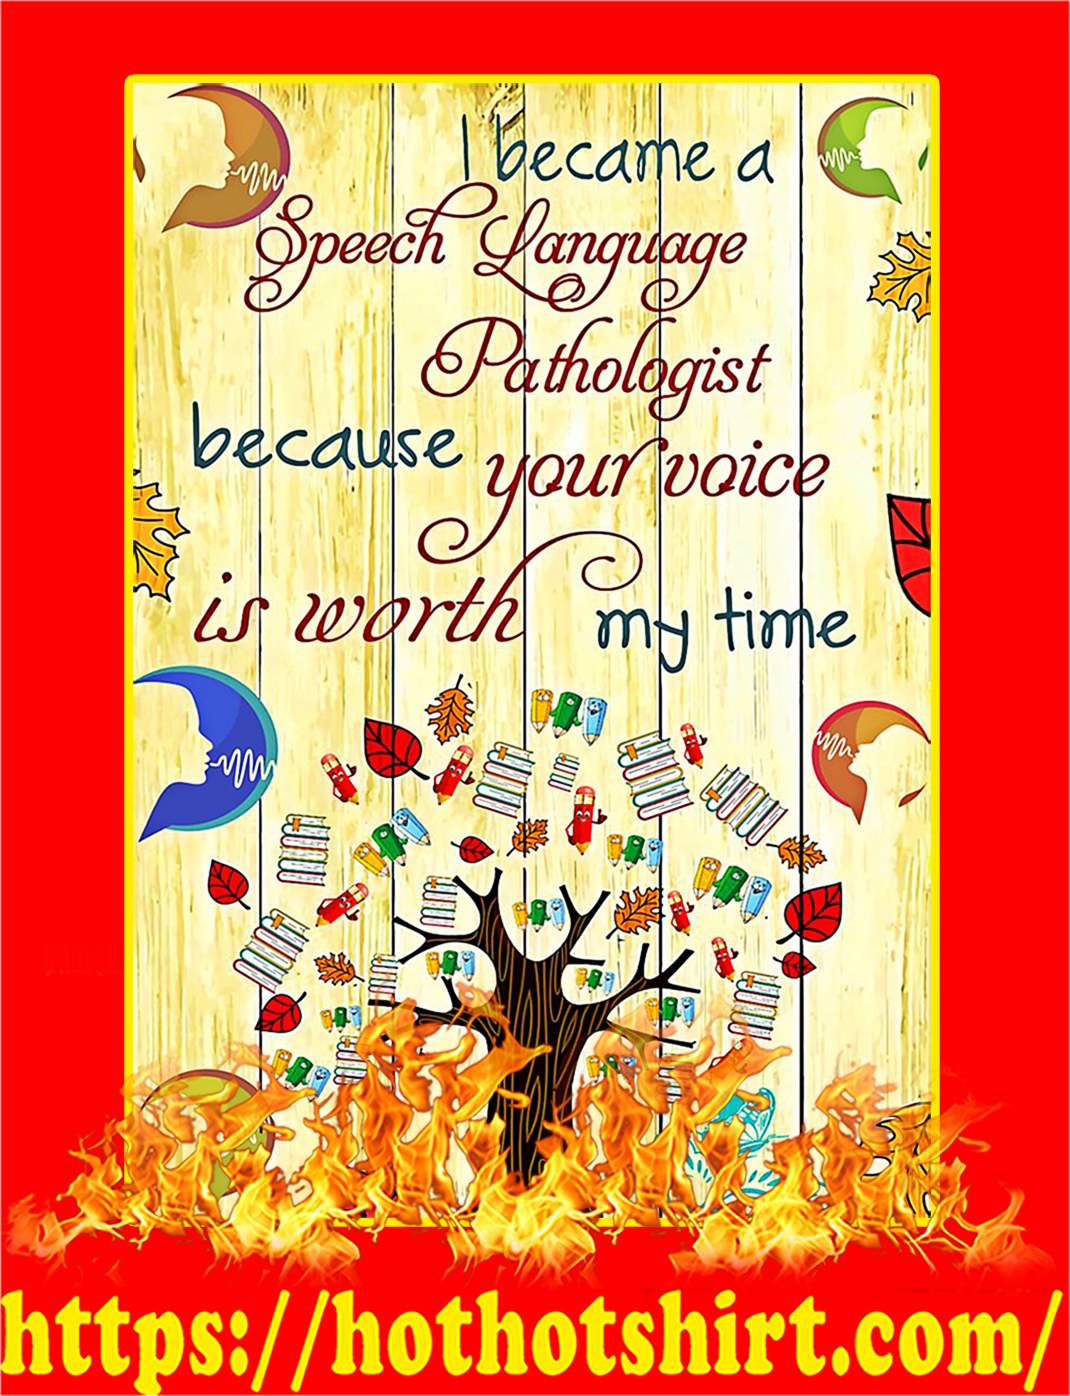 I Became A Speech Language Pathologist Because Your Voice Is Worth My Time Poster - A2